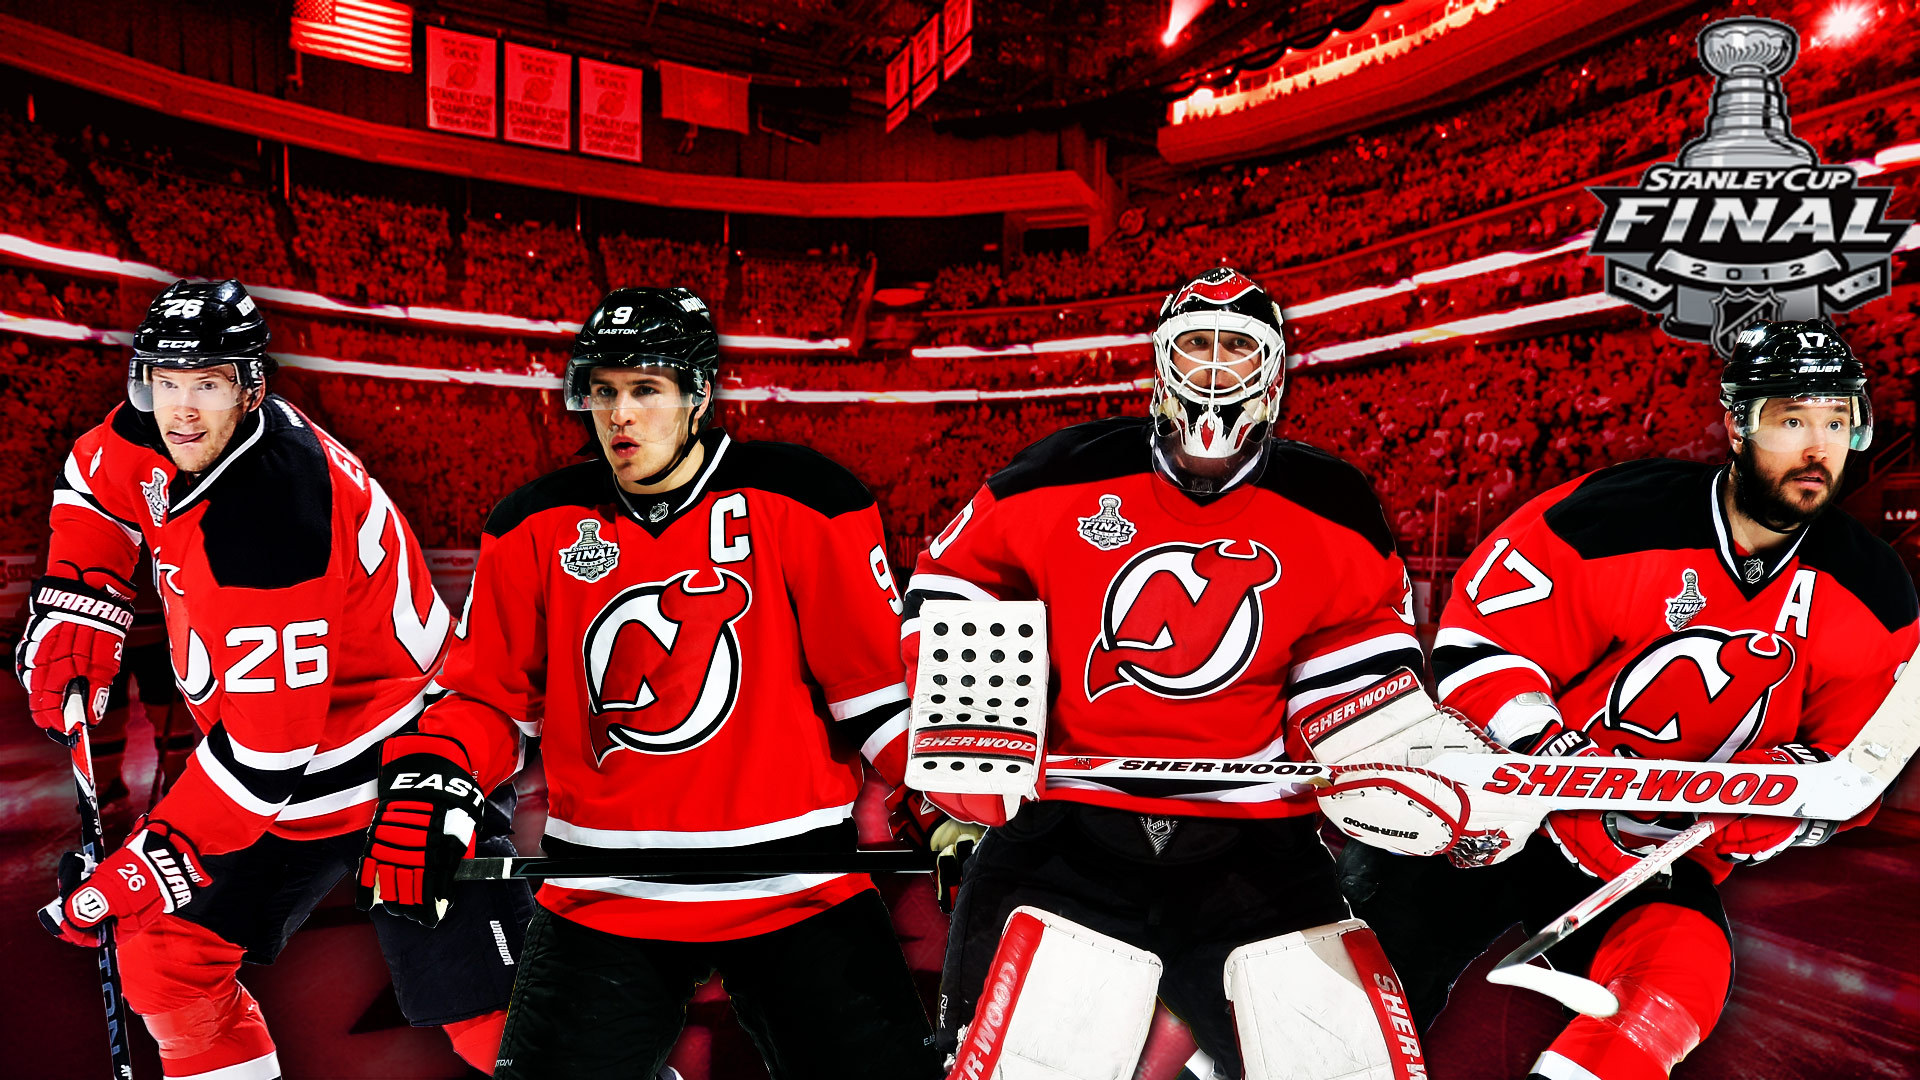 New Jersey Devils wallpapers New Jersey Devils background   Page 3 1920x1080